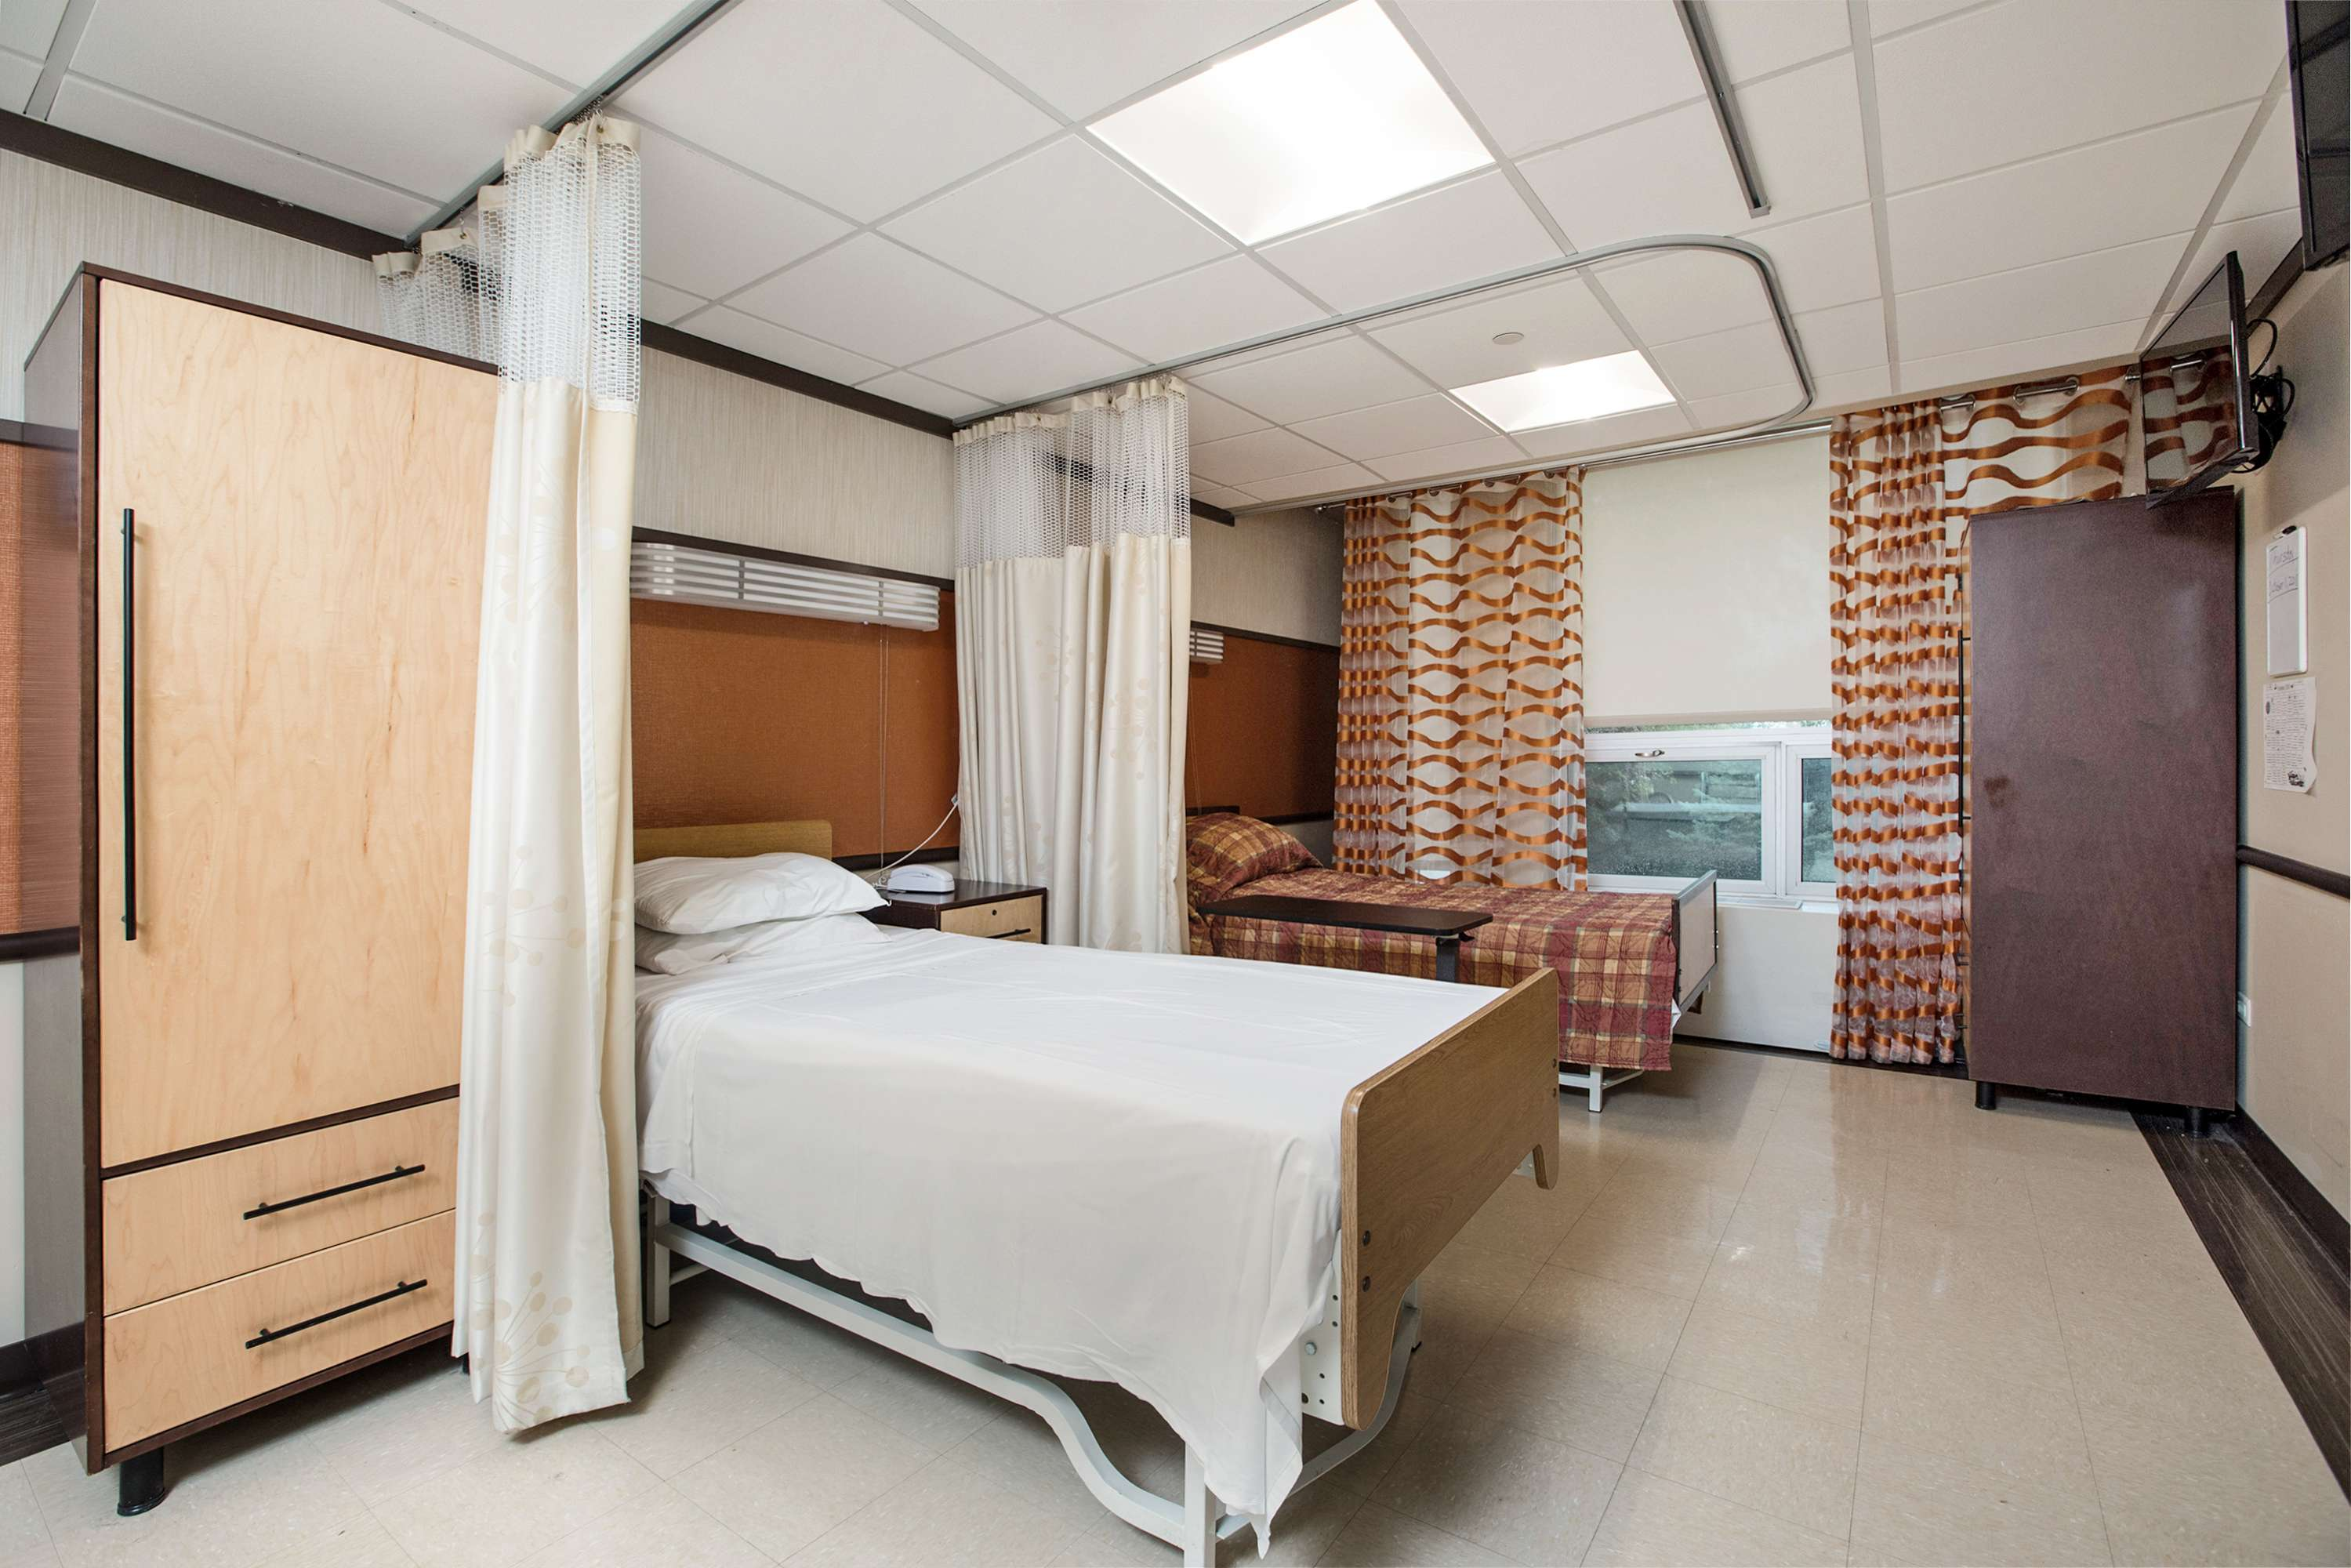 White Plains Center for Nursing Care Typical Bedroom